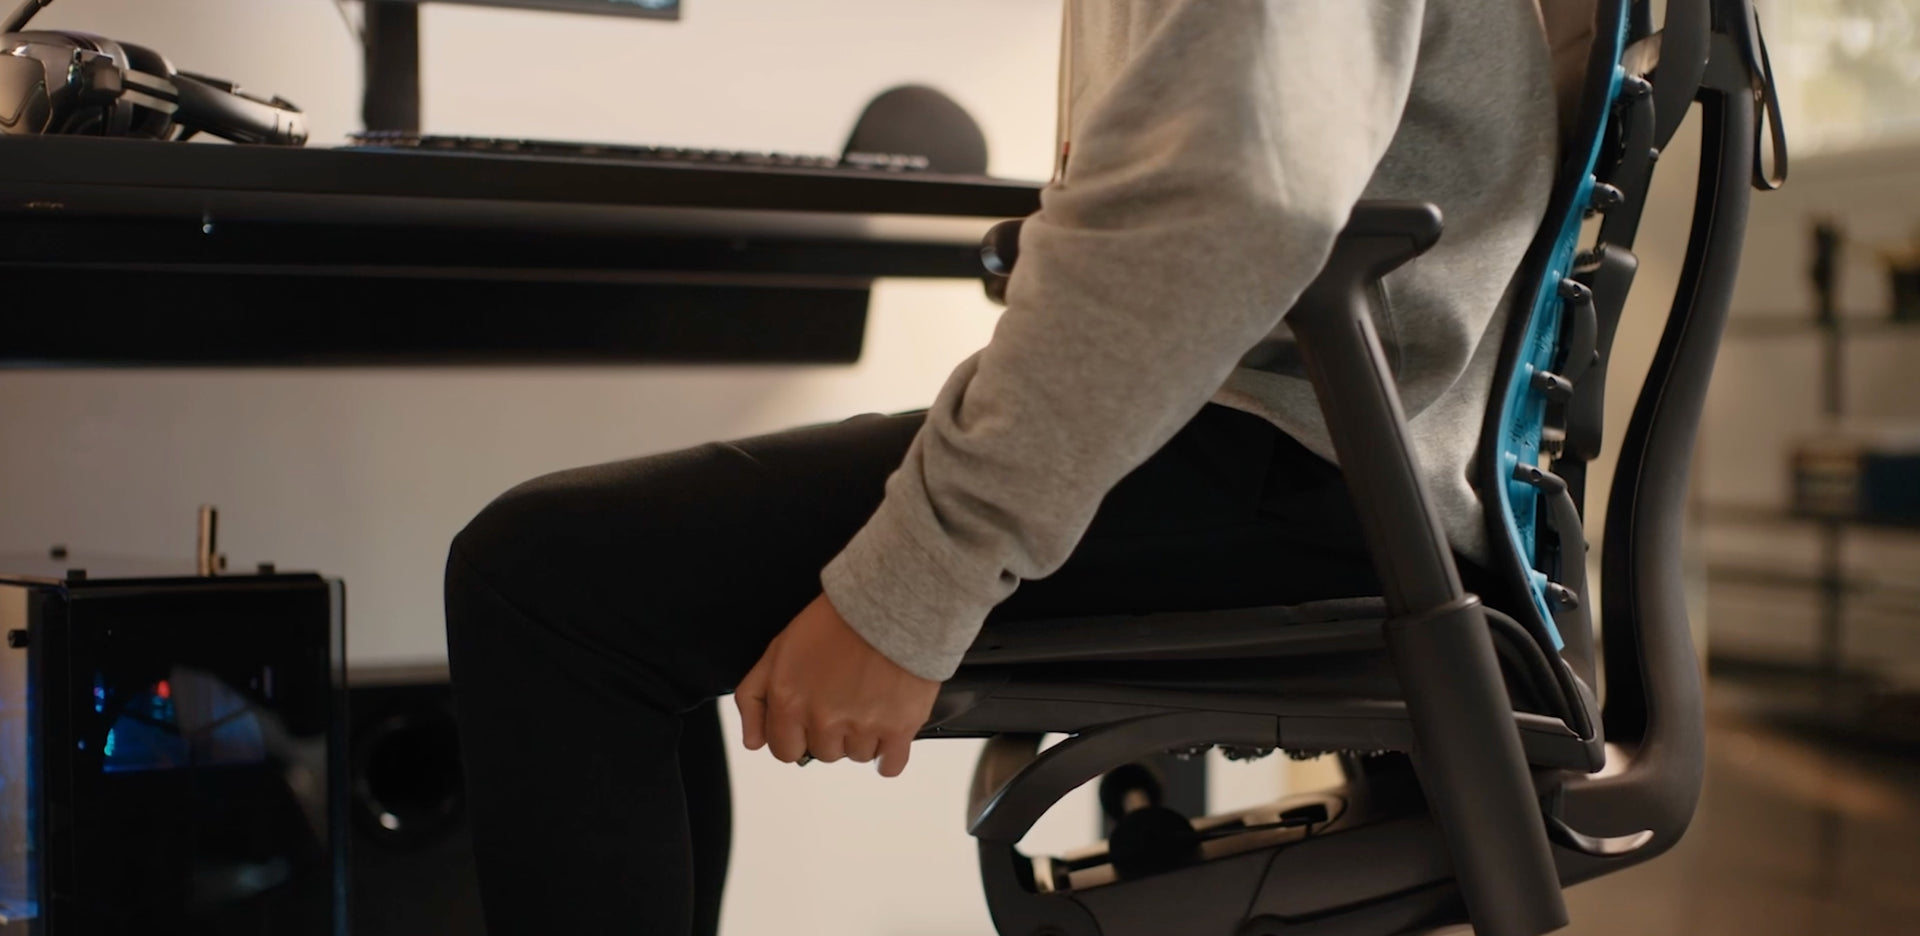 A close-up video of the side of a black Embody Gaming Chair adjustable seat depth mechanism being adjusted by a person in a sweatshirt and pants.